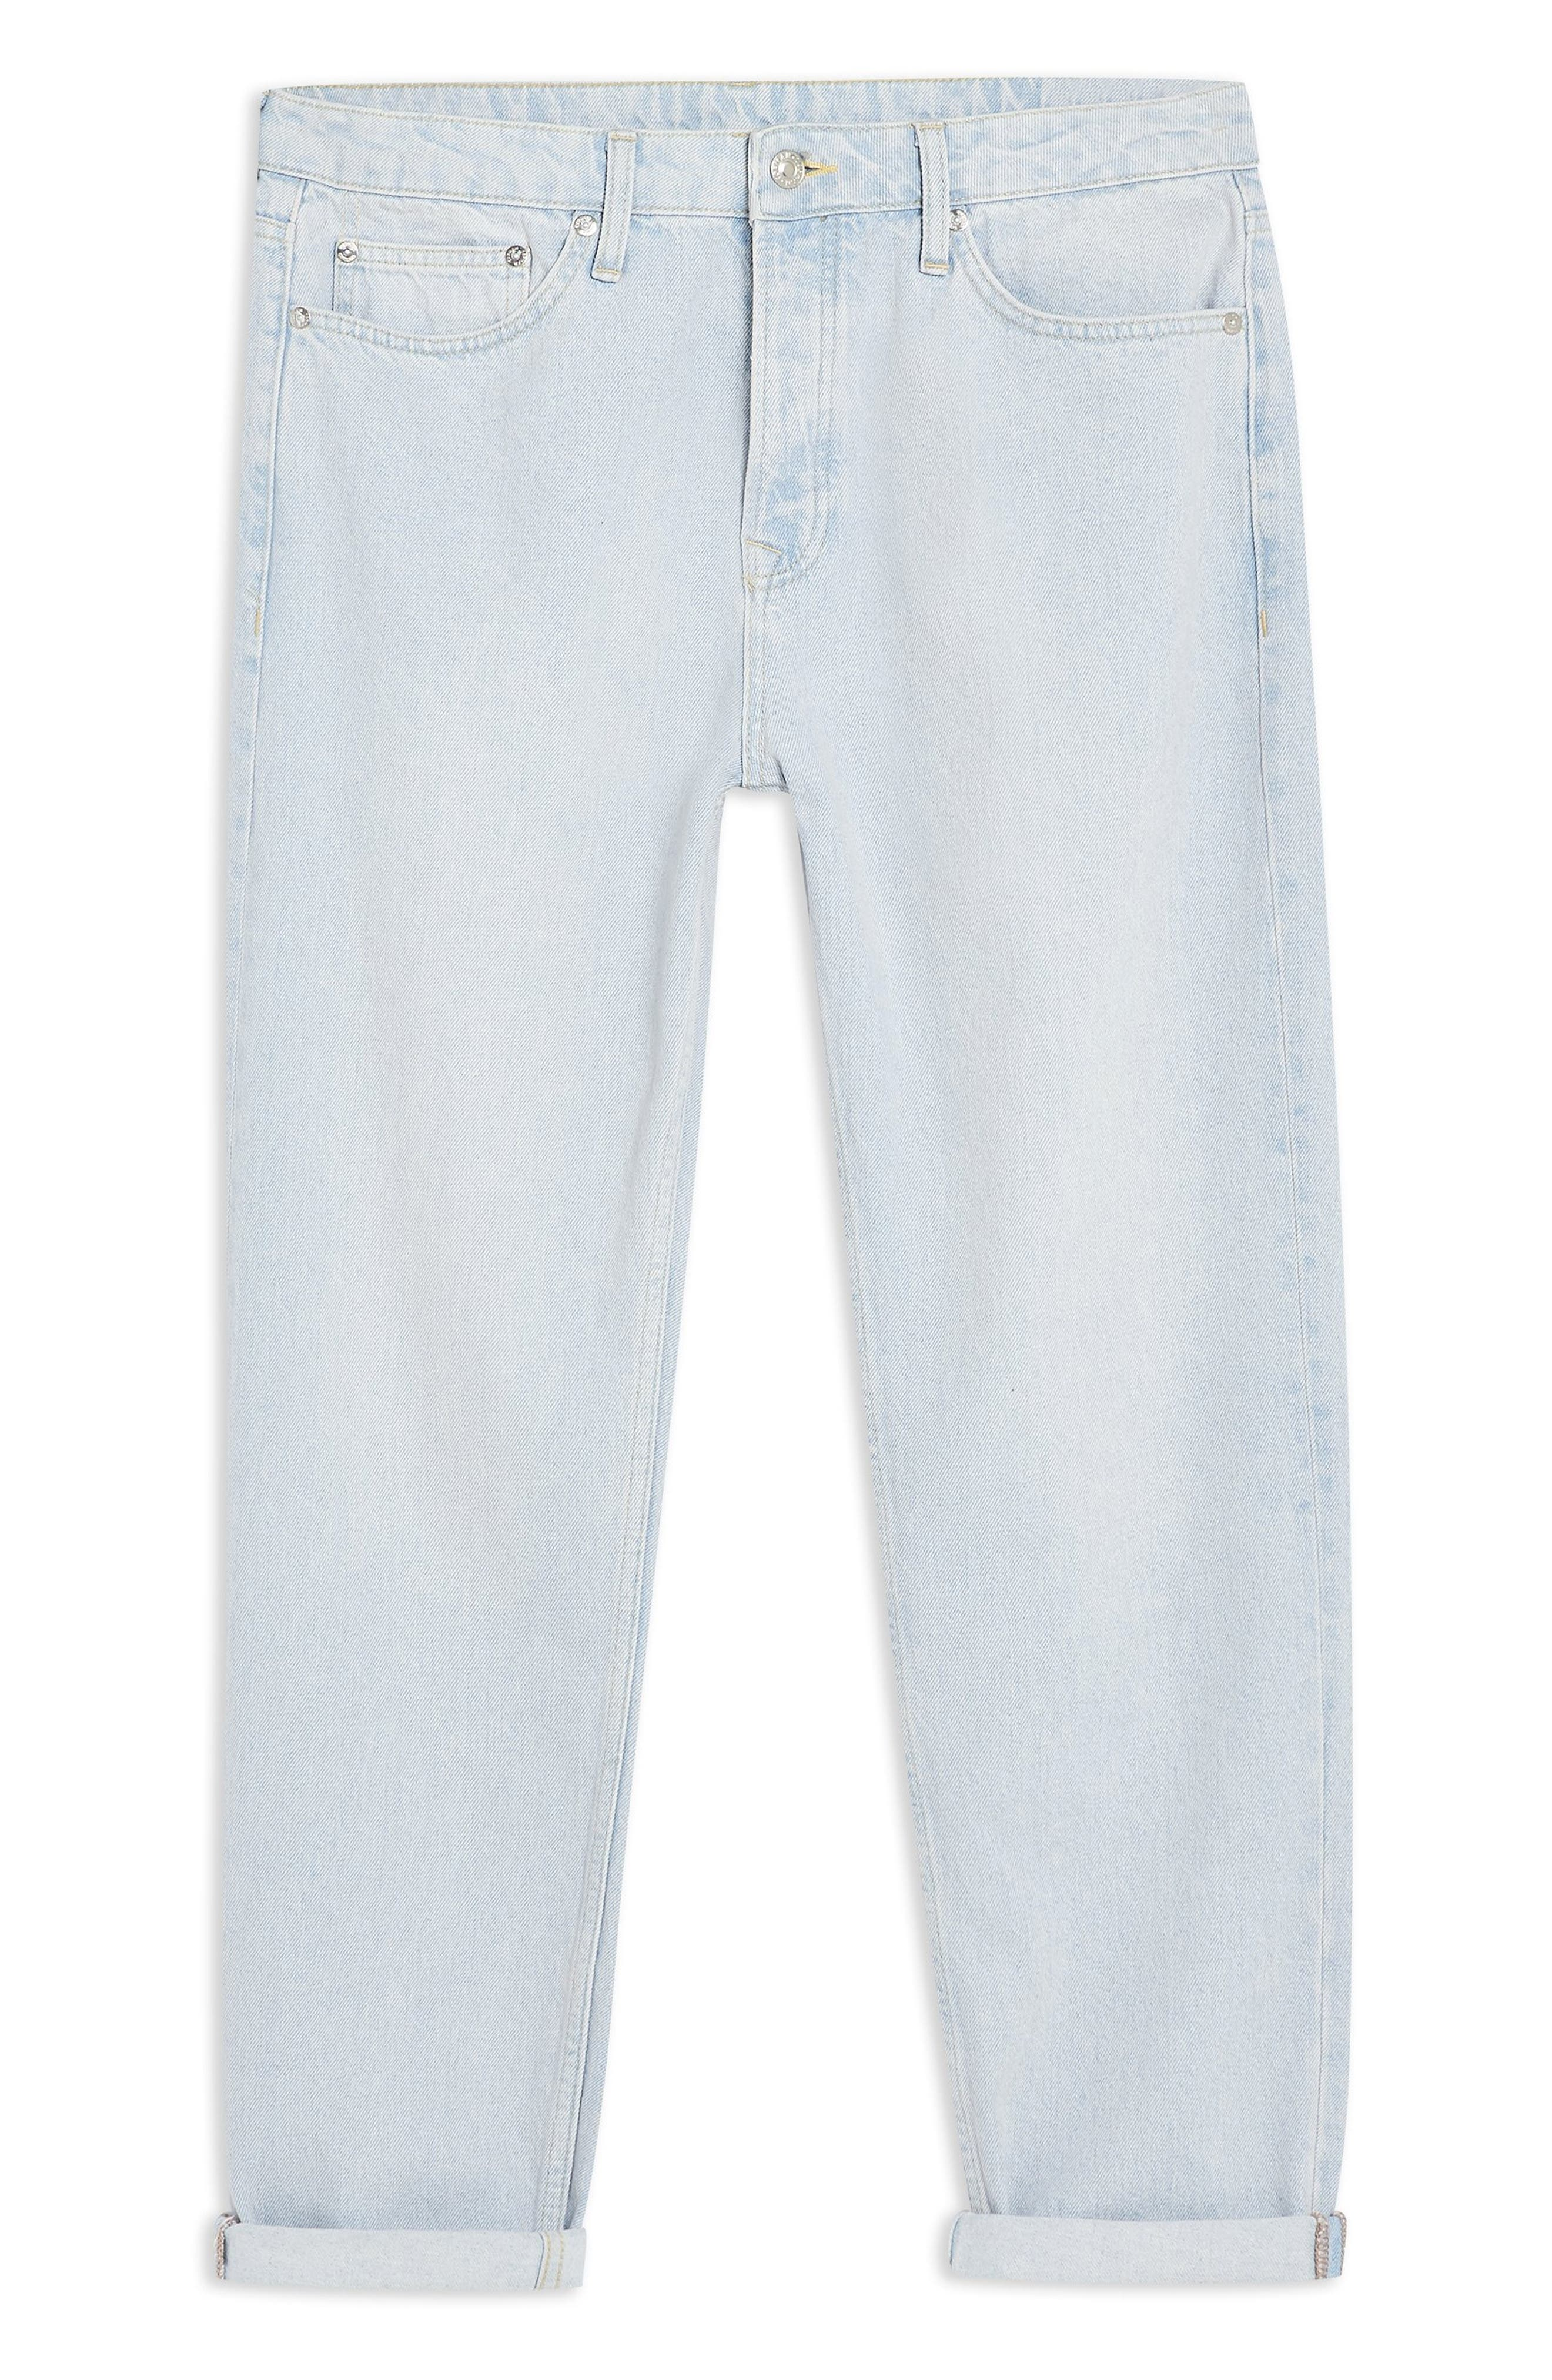 TOPMAN,                             Tapered Fit Jeans,                             Alternate thumbnail 4, color,                             BLUE